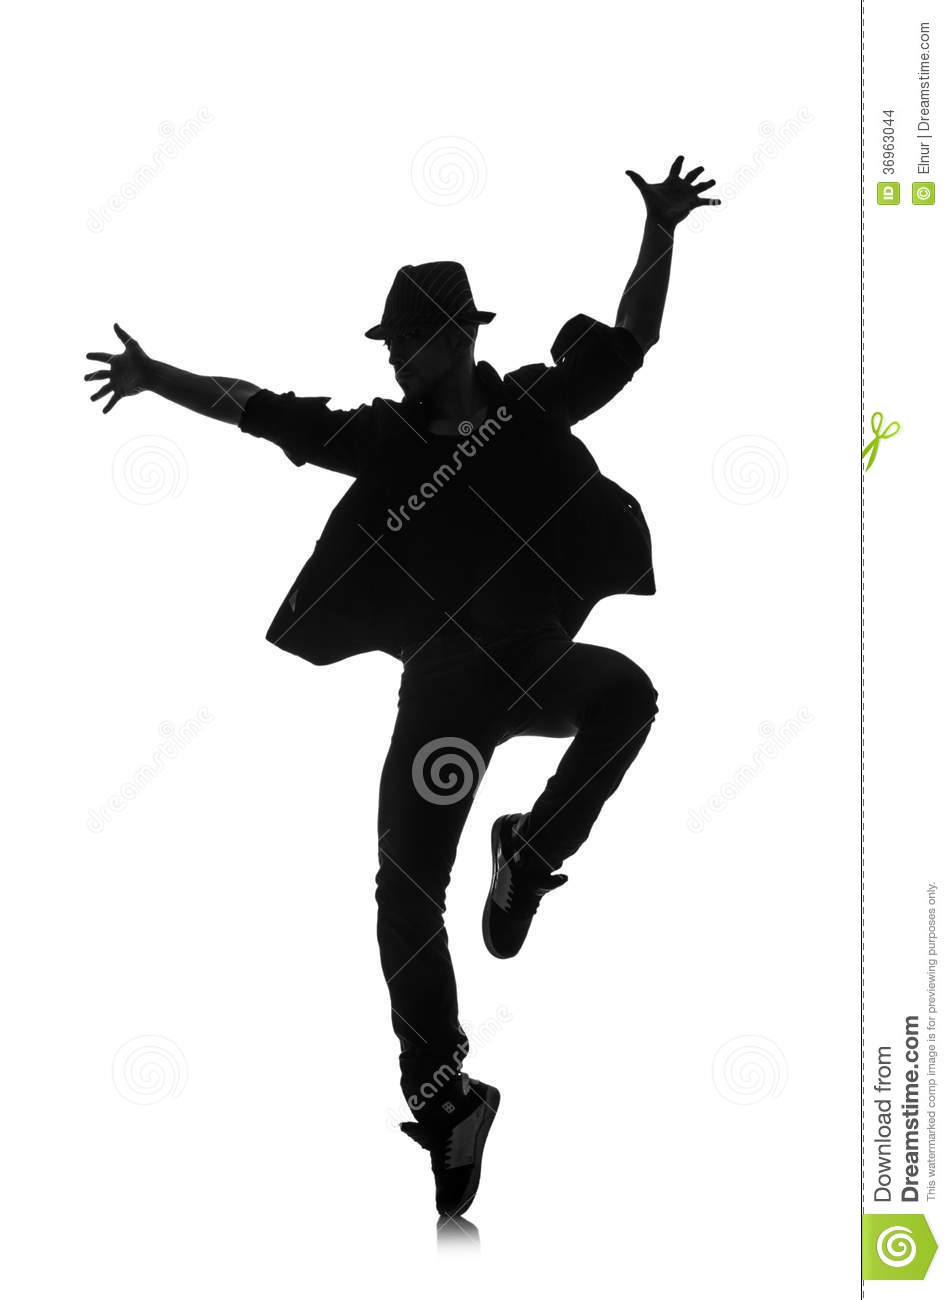 Silhouette Of Male Dancer Stock Images - Image: 36963044